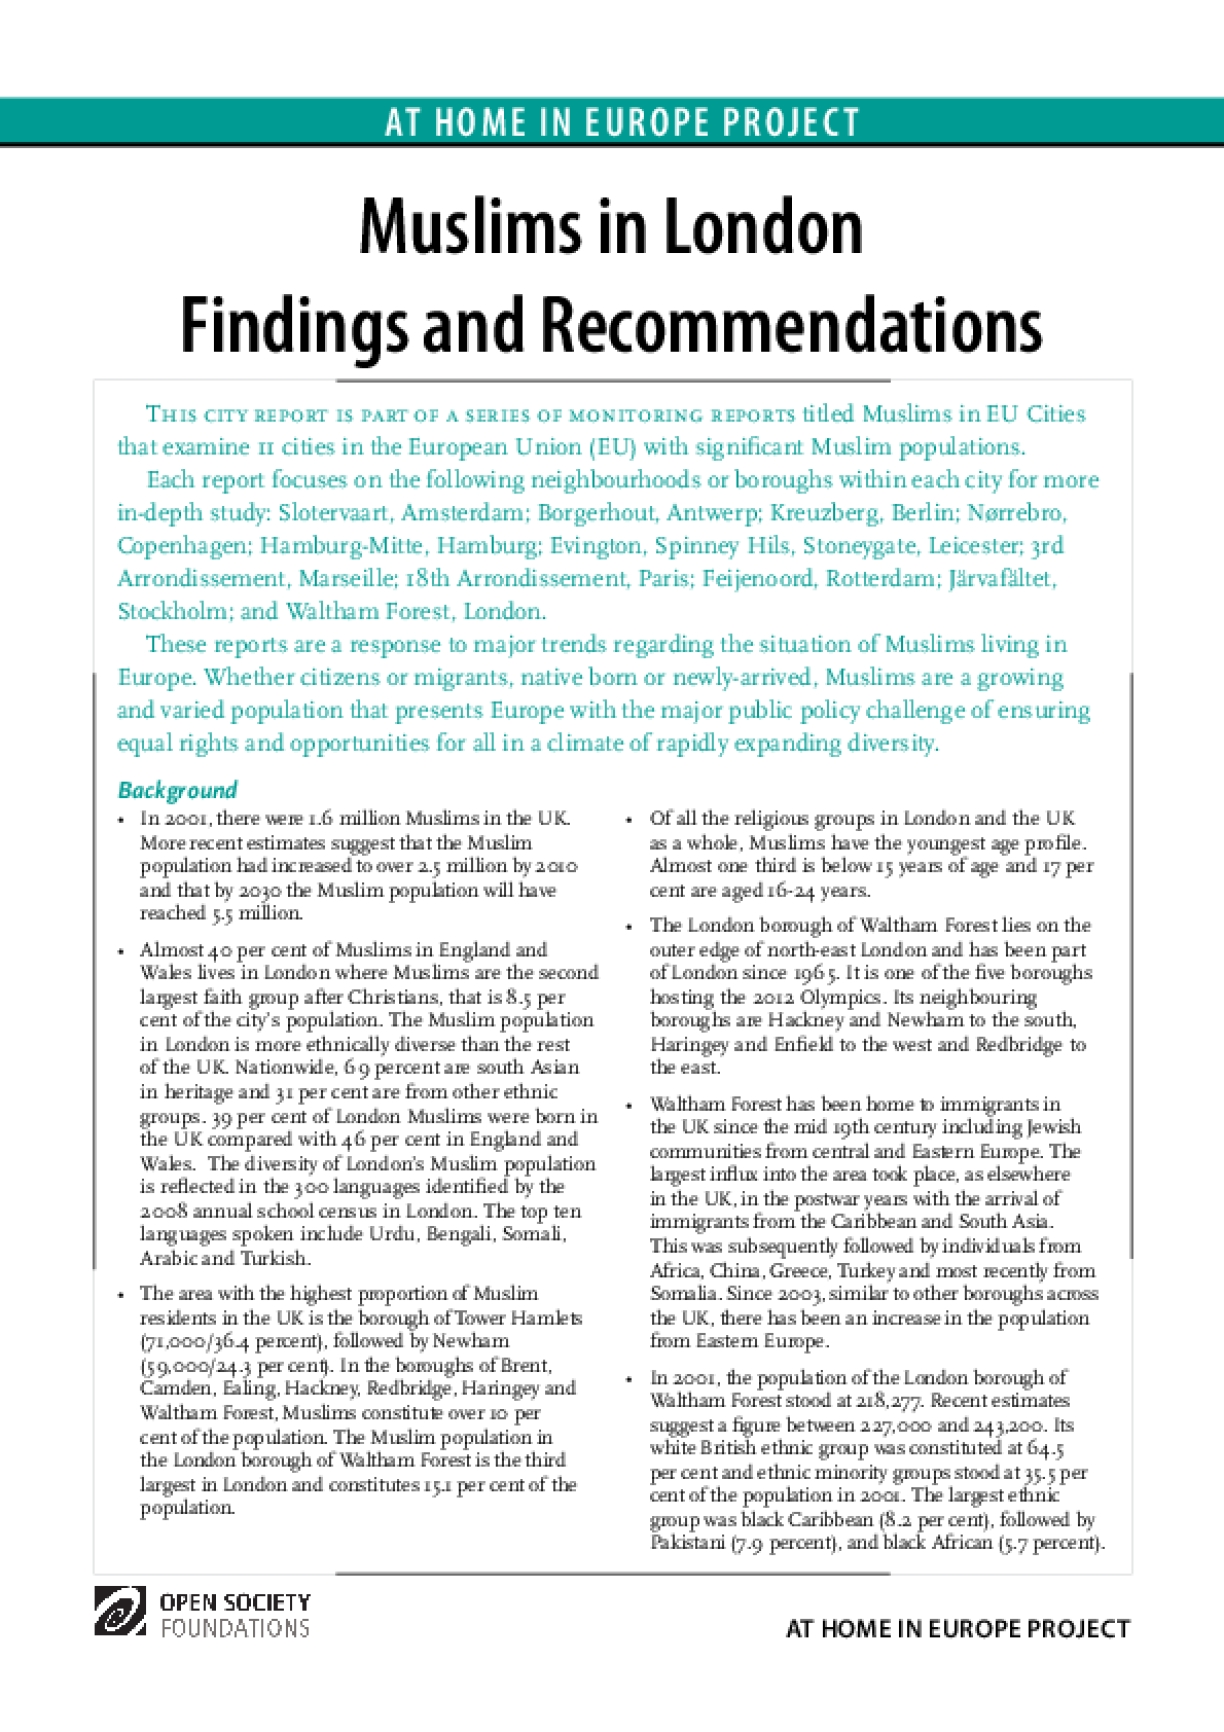 Muslims in London Findings and Recommendations